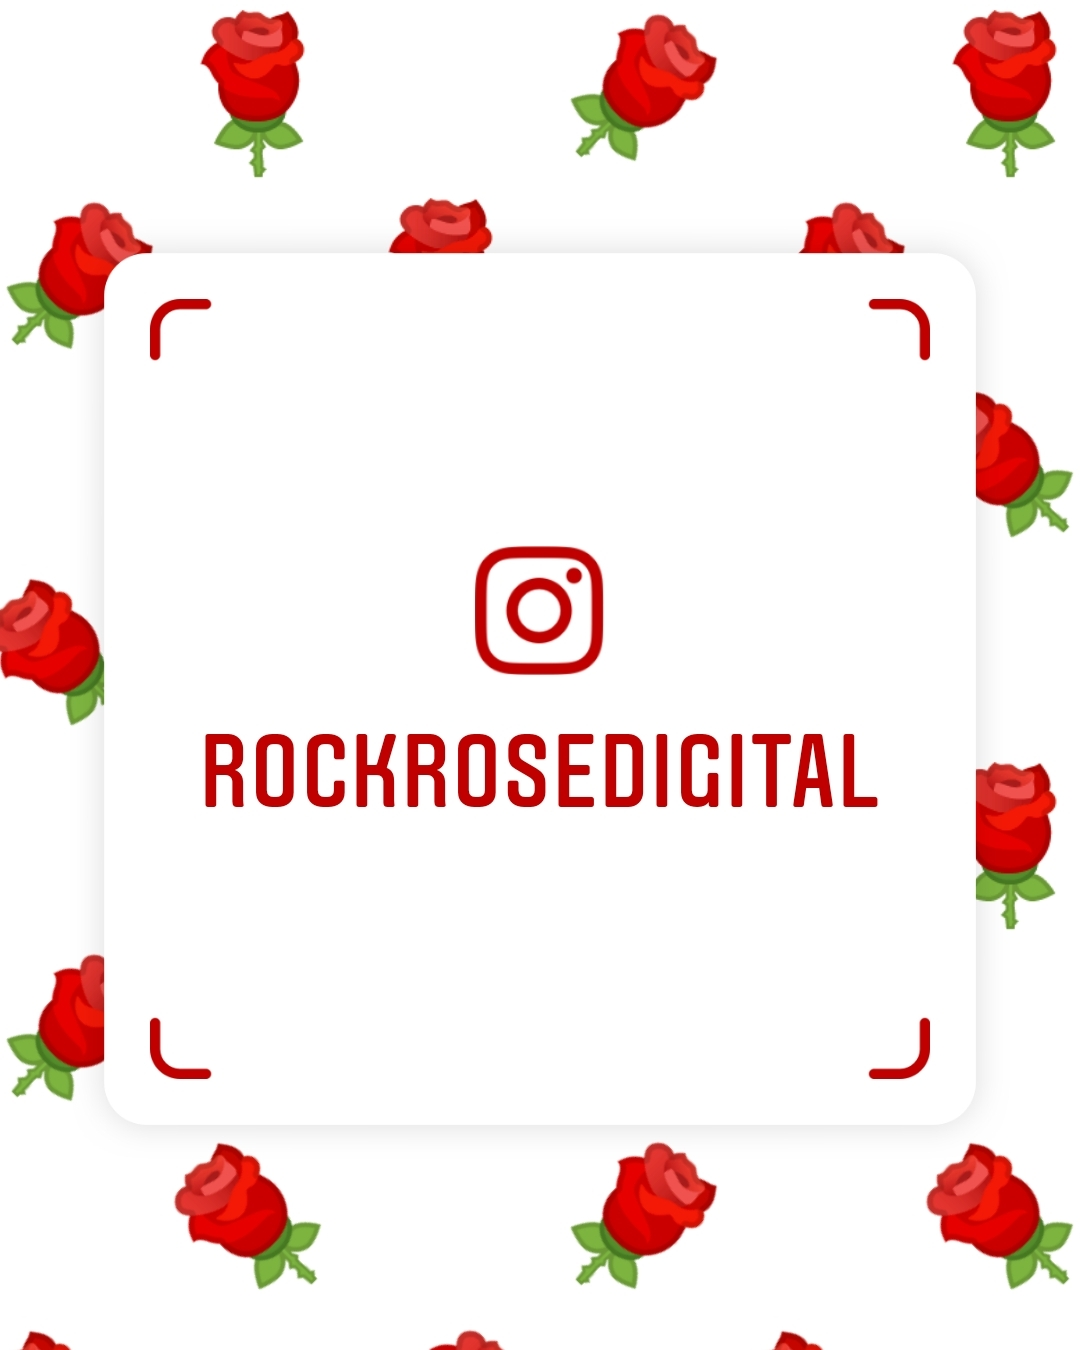 Rock Rose Digital, social media agency and consultancy based in Shrewsbury demonstrates their branded Instagram Nametag